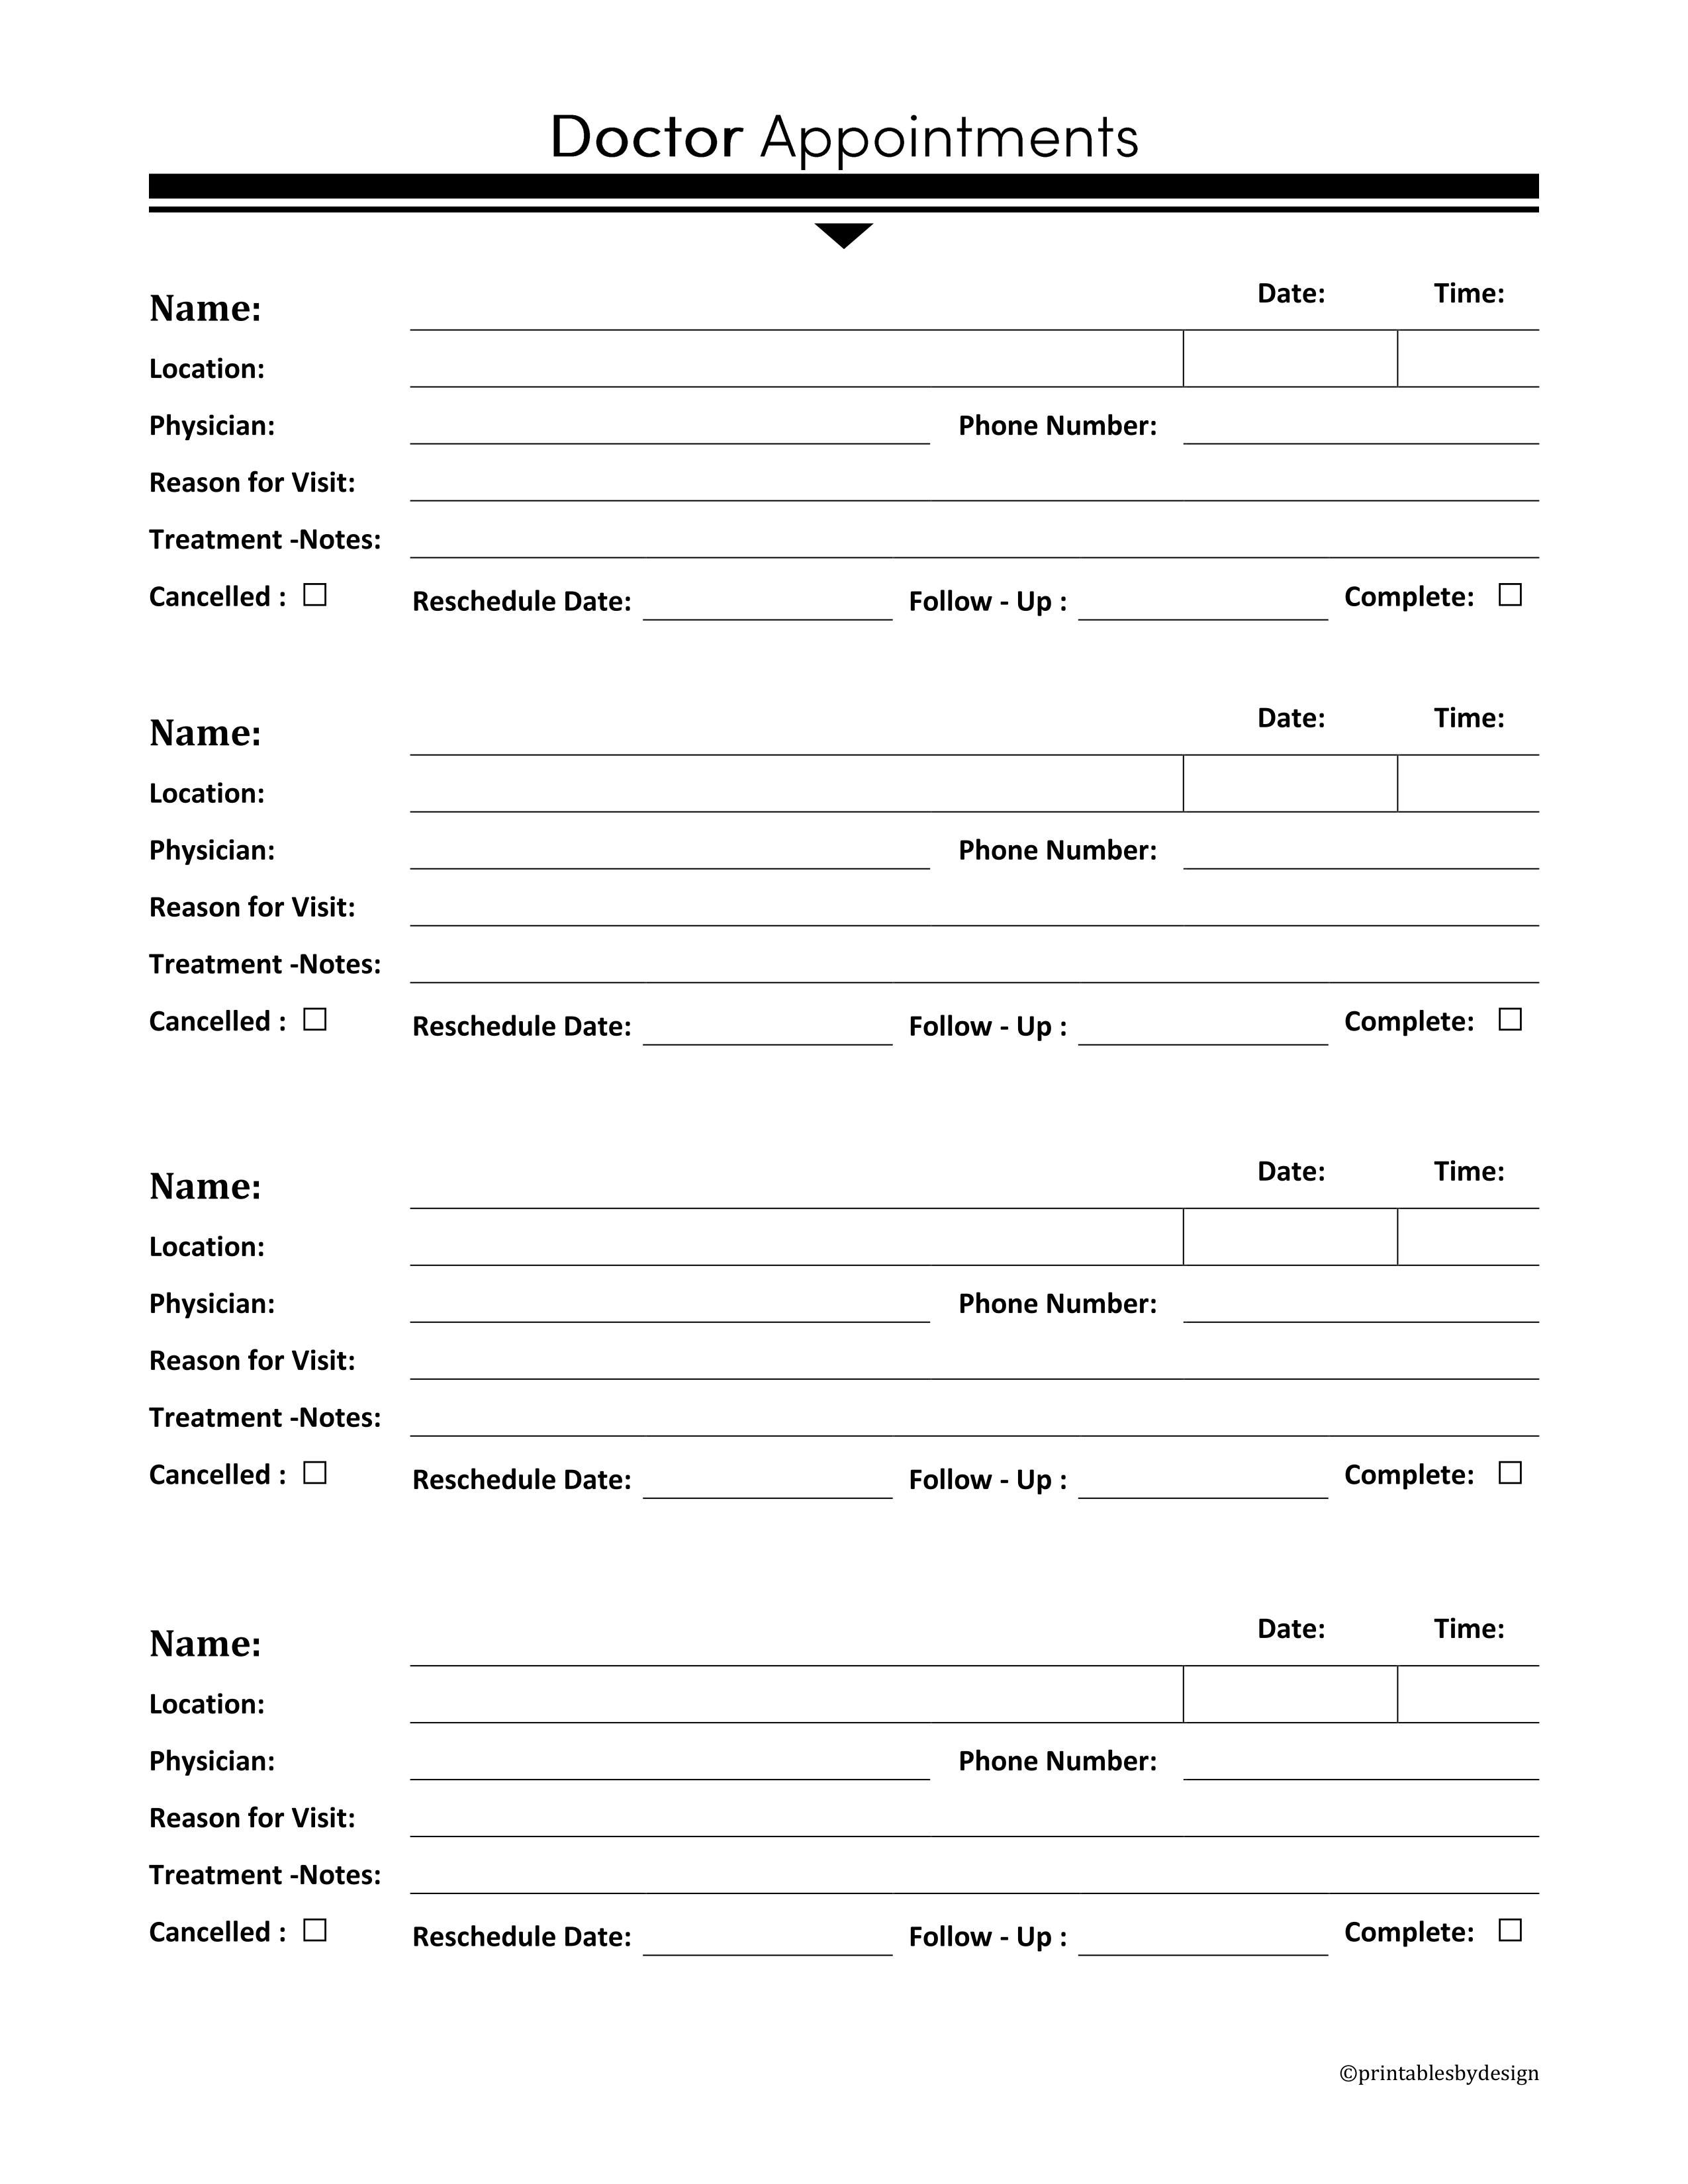 Doctor Appointments This Also Comes In A Blue Landscape Medical Appointment Version Perfect F Doctor Appointment Free Printables Organization Doctor Visit